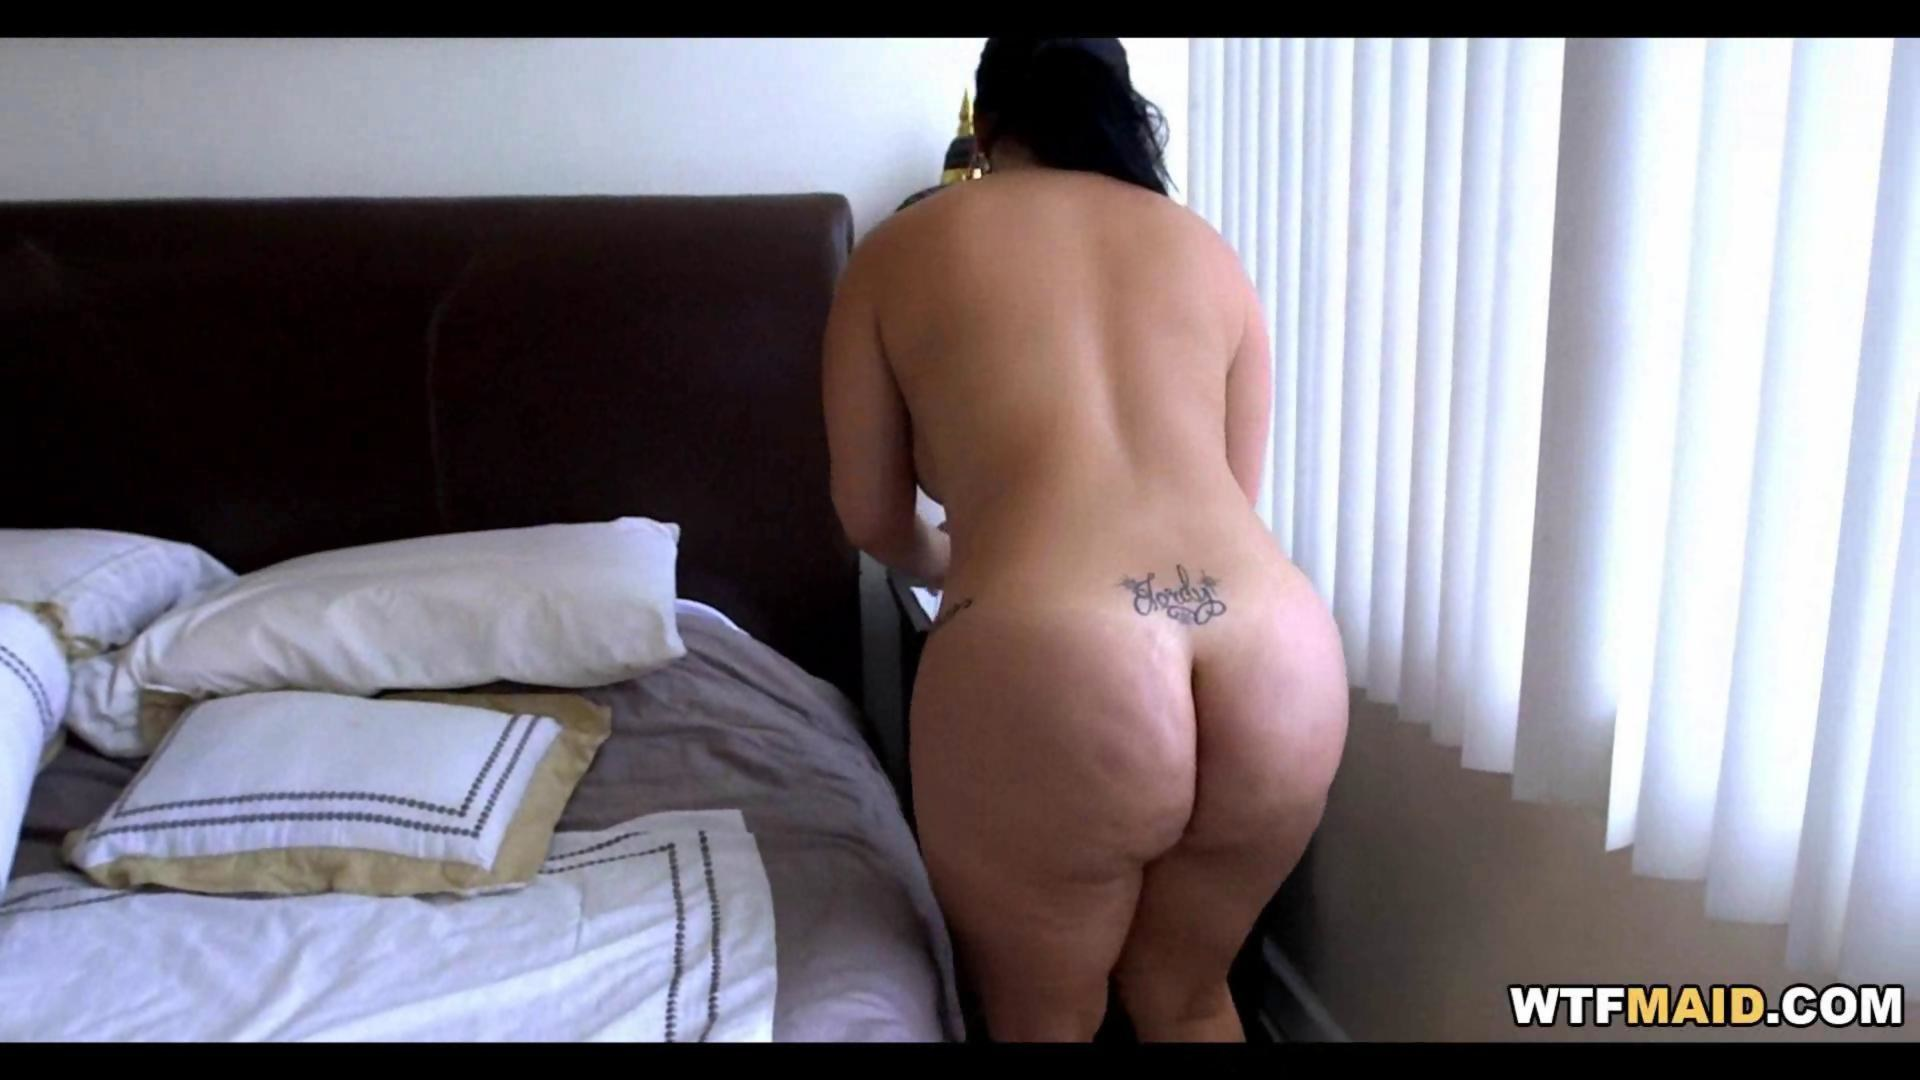 Latina housekeeper sex